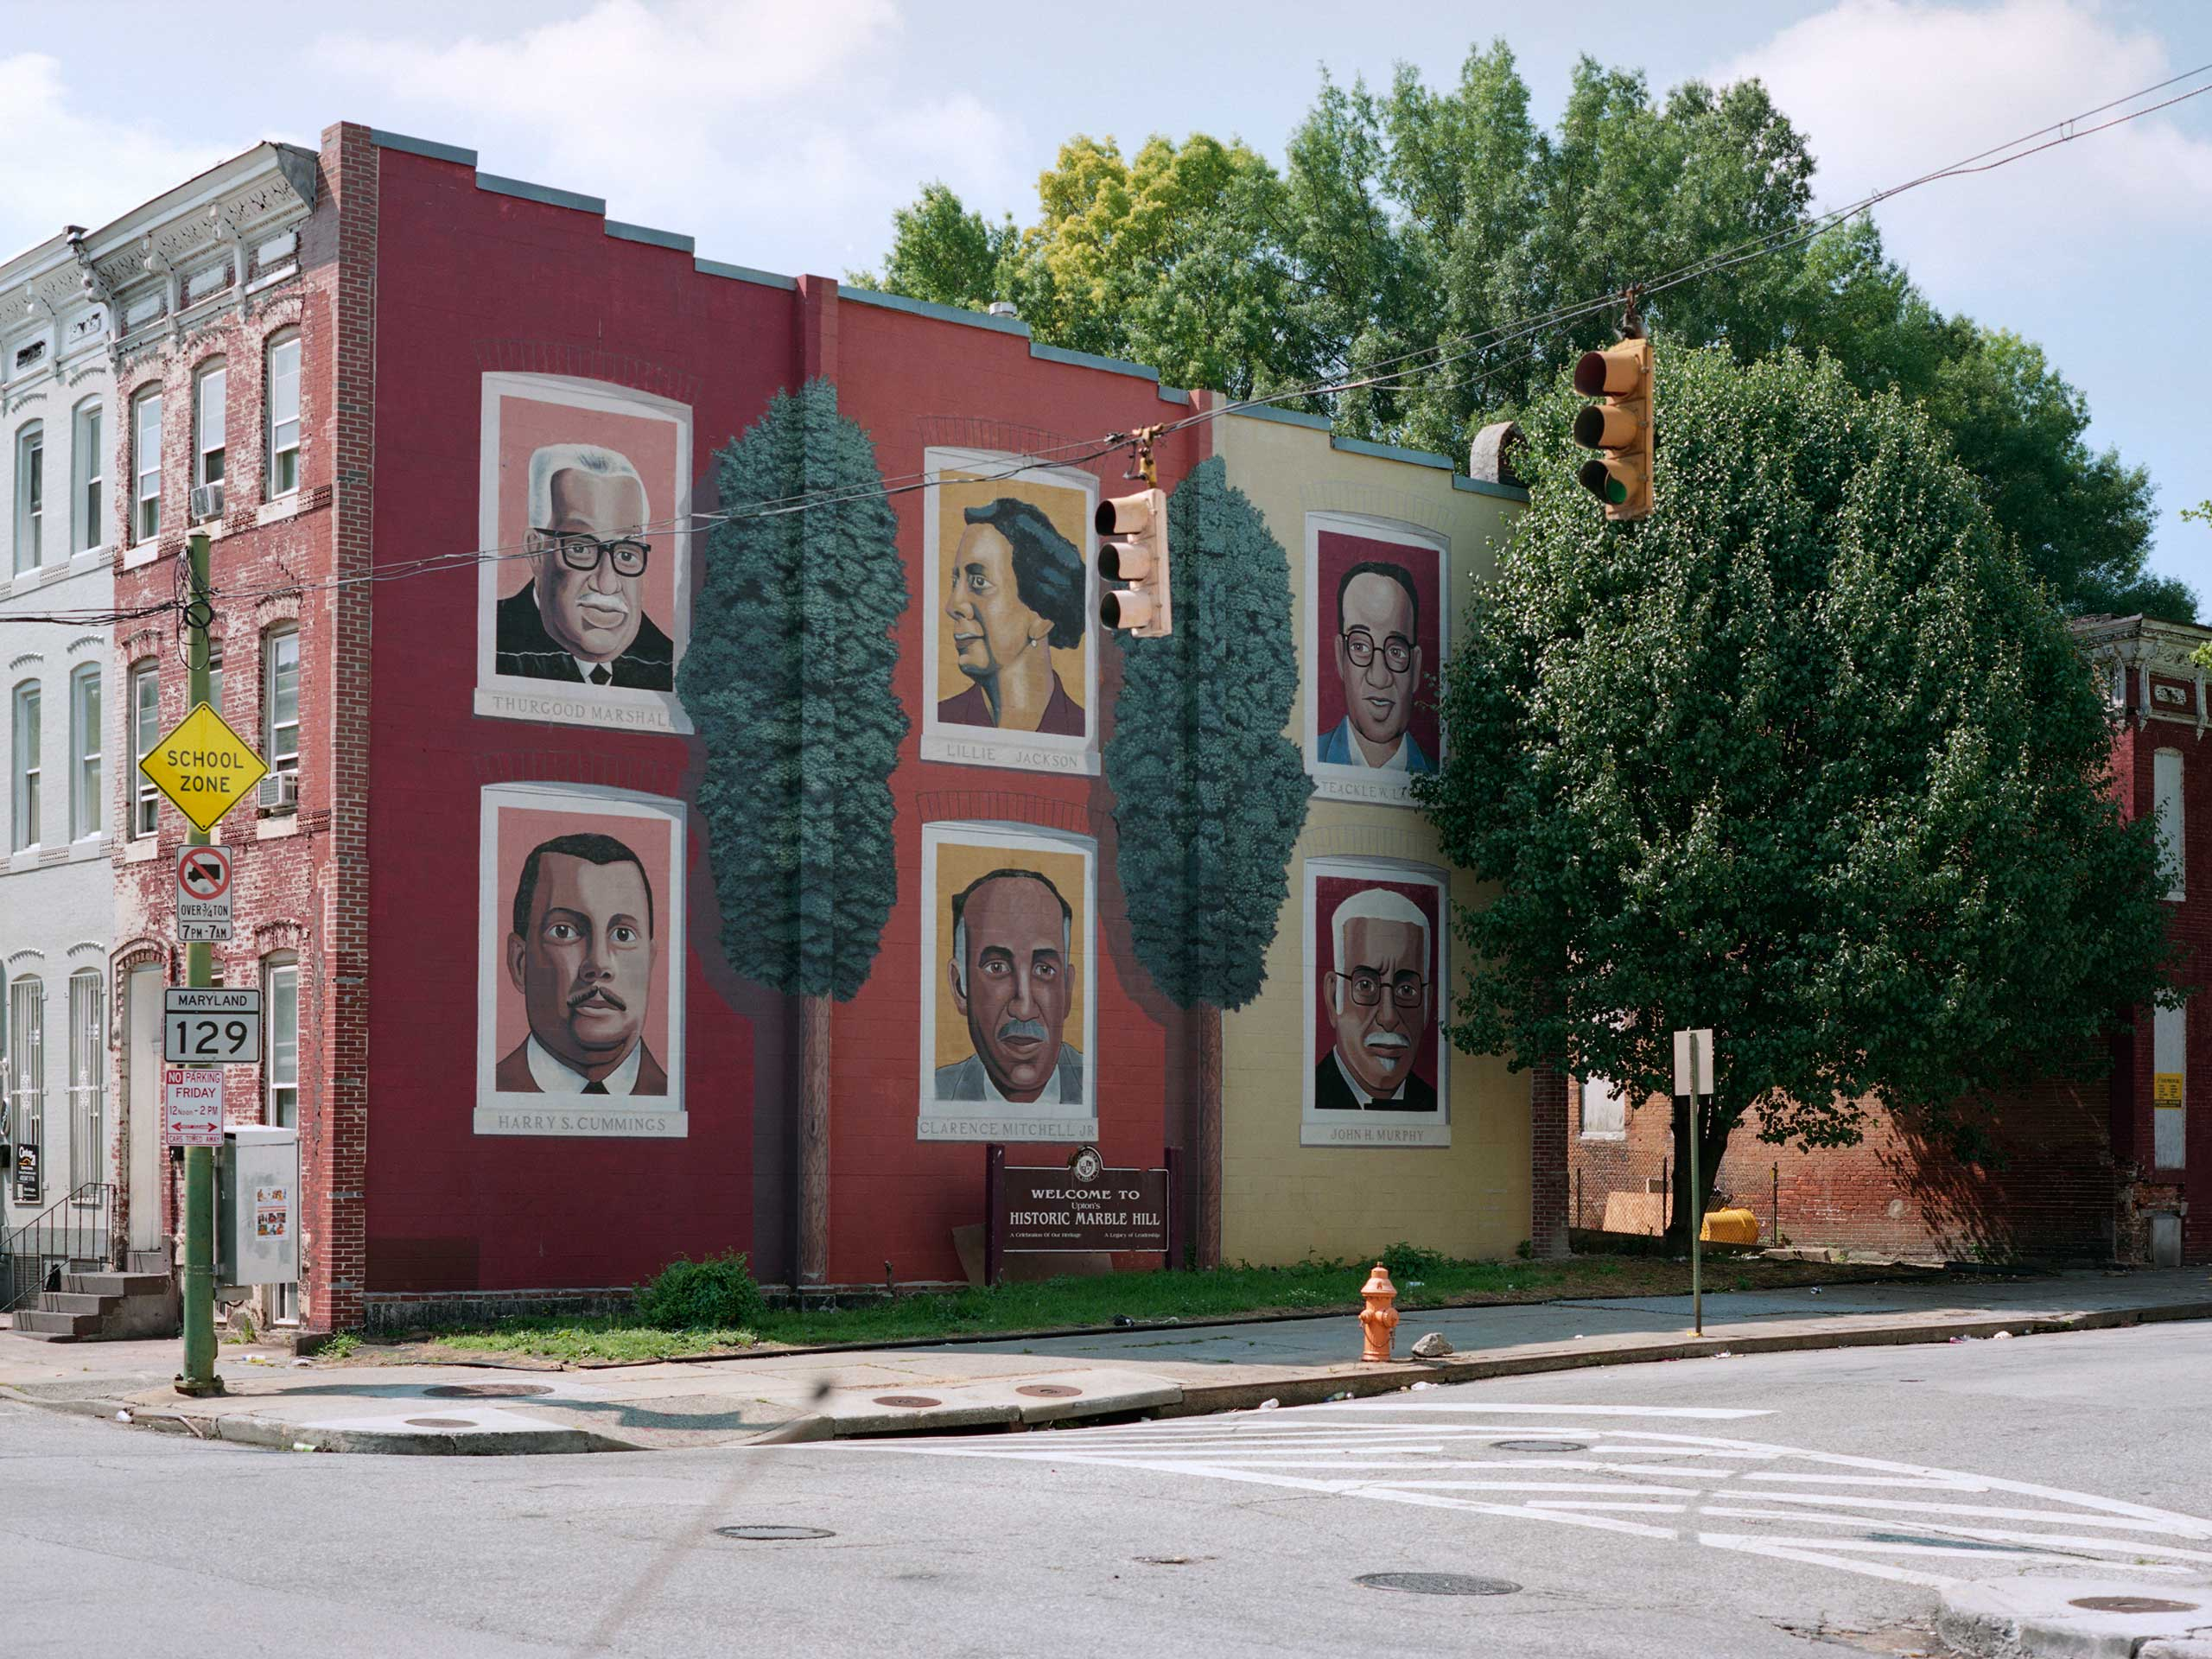 A mural celebrating famous residents of West Baltimore, including the first black Supreme Court Justice, Thurgood Marshall, covers the corner of Druid Hill Avenue and Laurens Street.